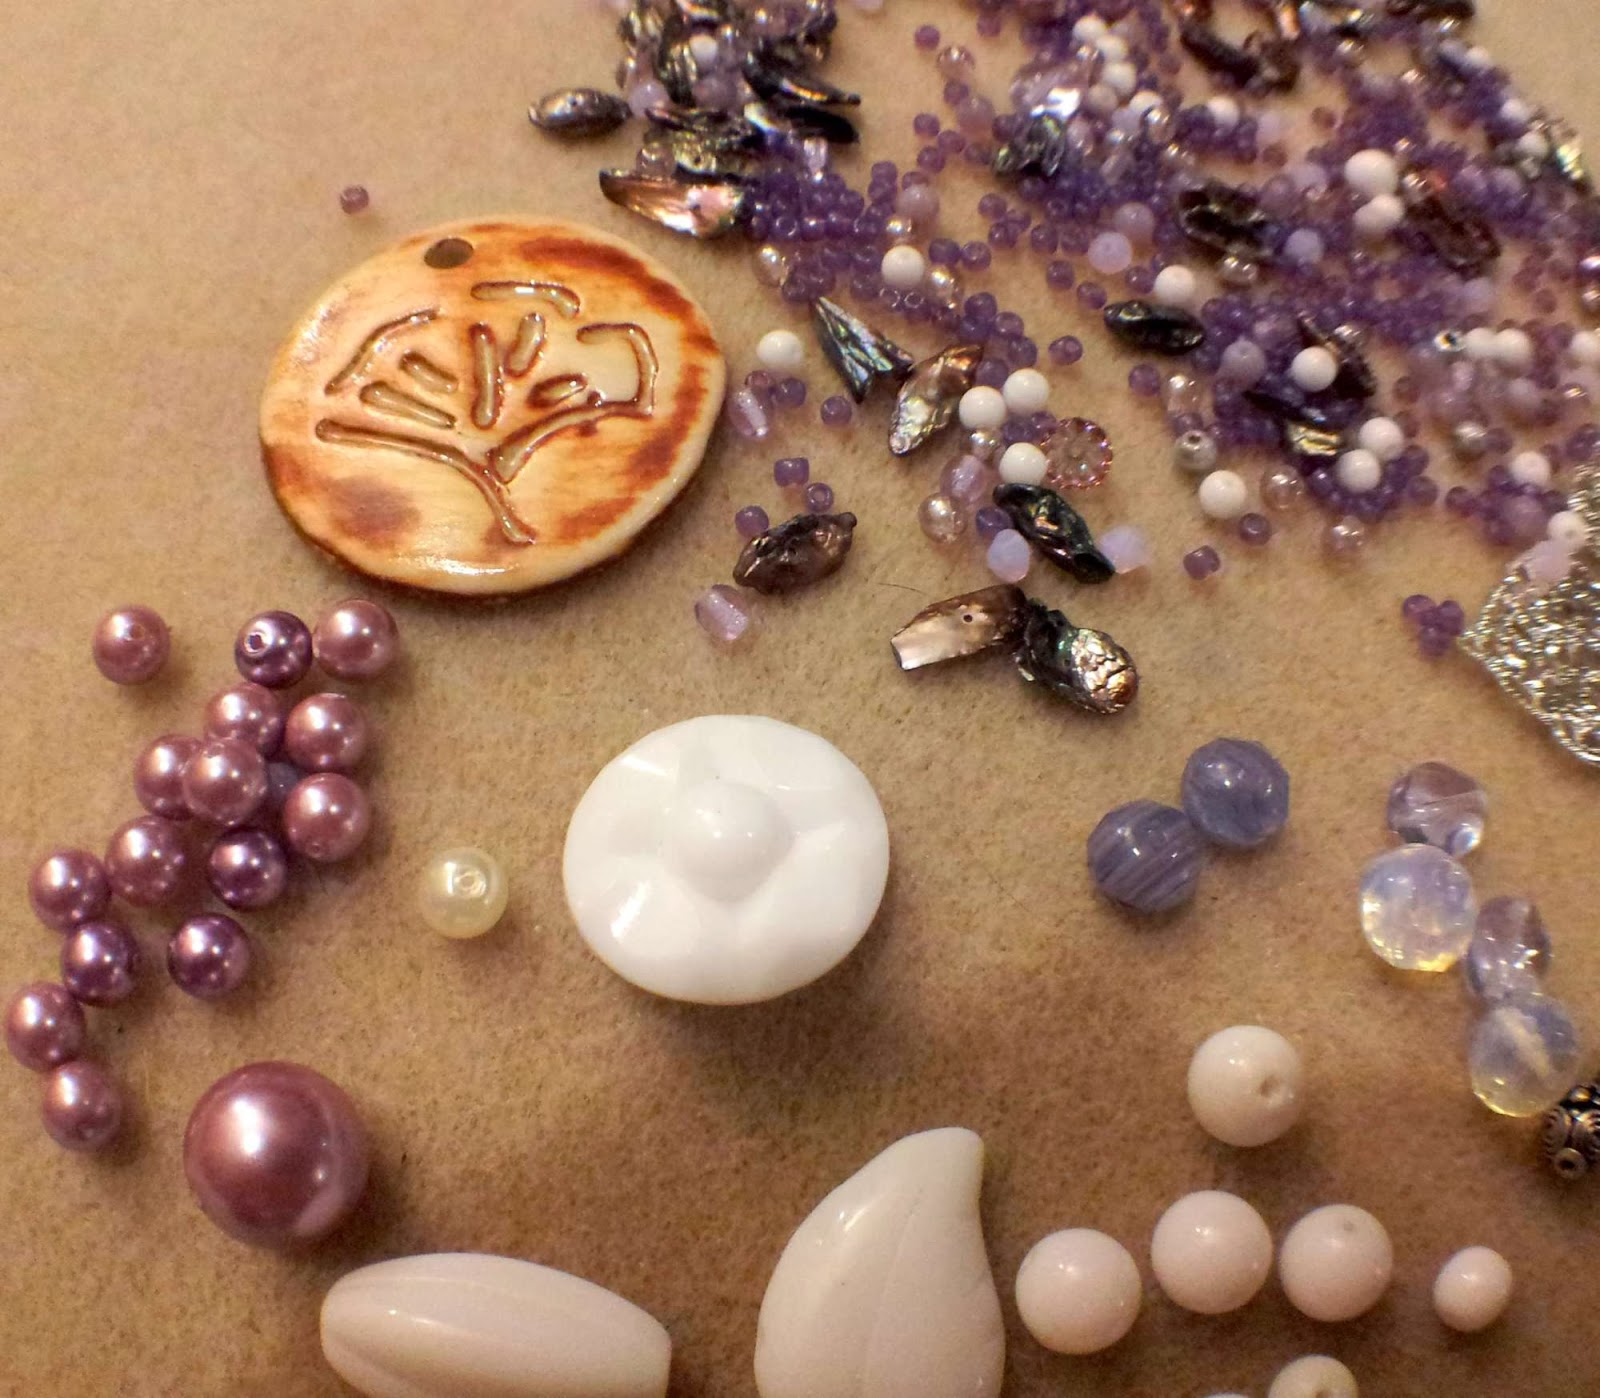 Into the forest elements: purple, white, and silver beads in various mediums (glass, ceramic, metal, glass pearls, mother of pearl) and teeny-tiny seed beads, along with a tree ceramic focal by Marla James :: All Pretty Things